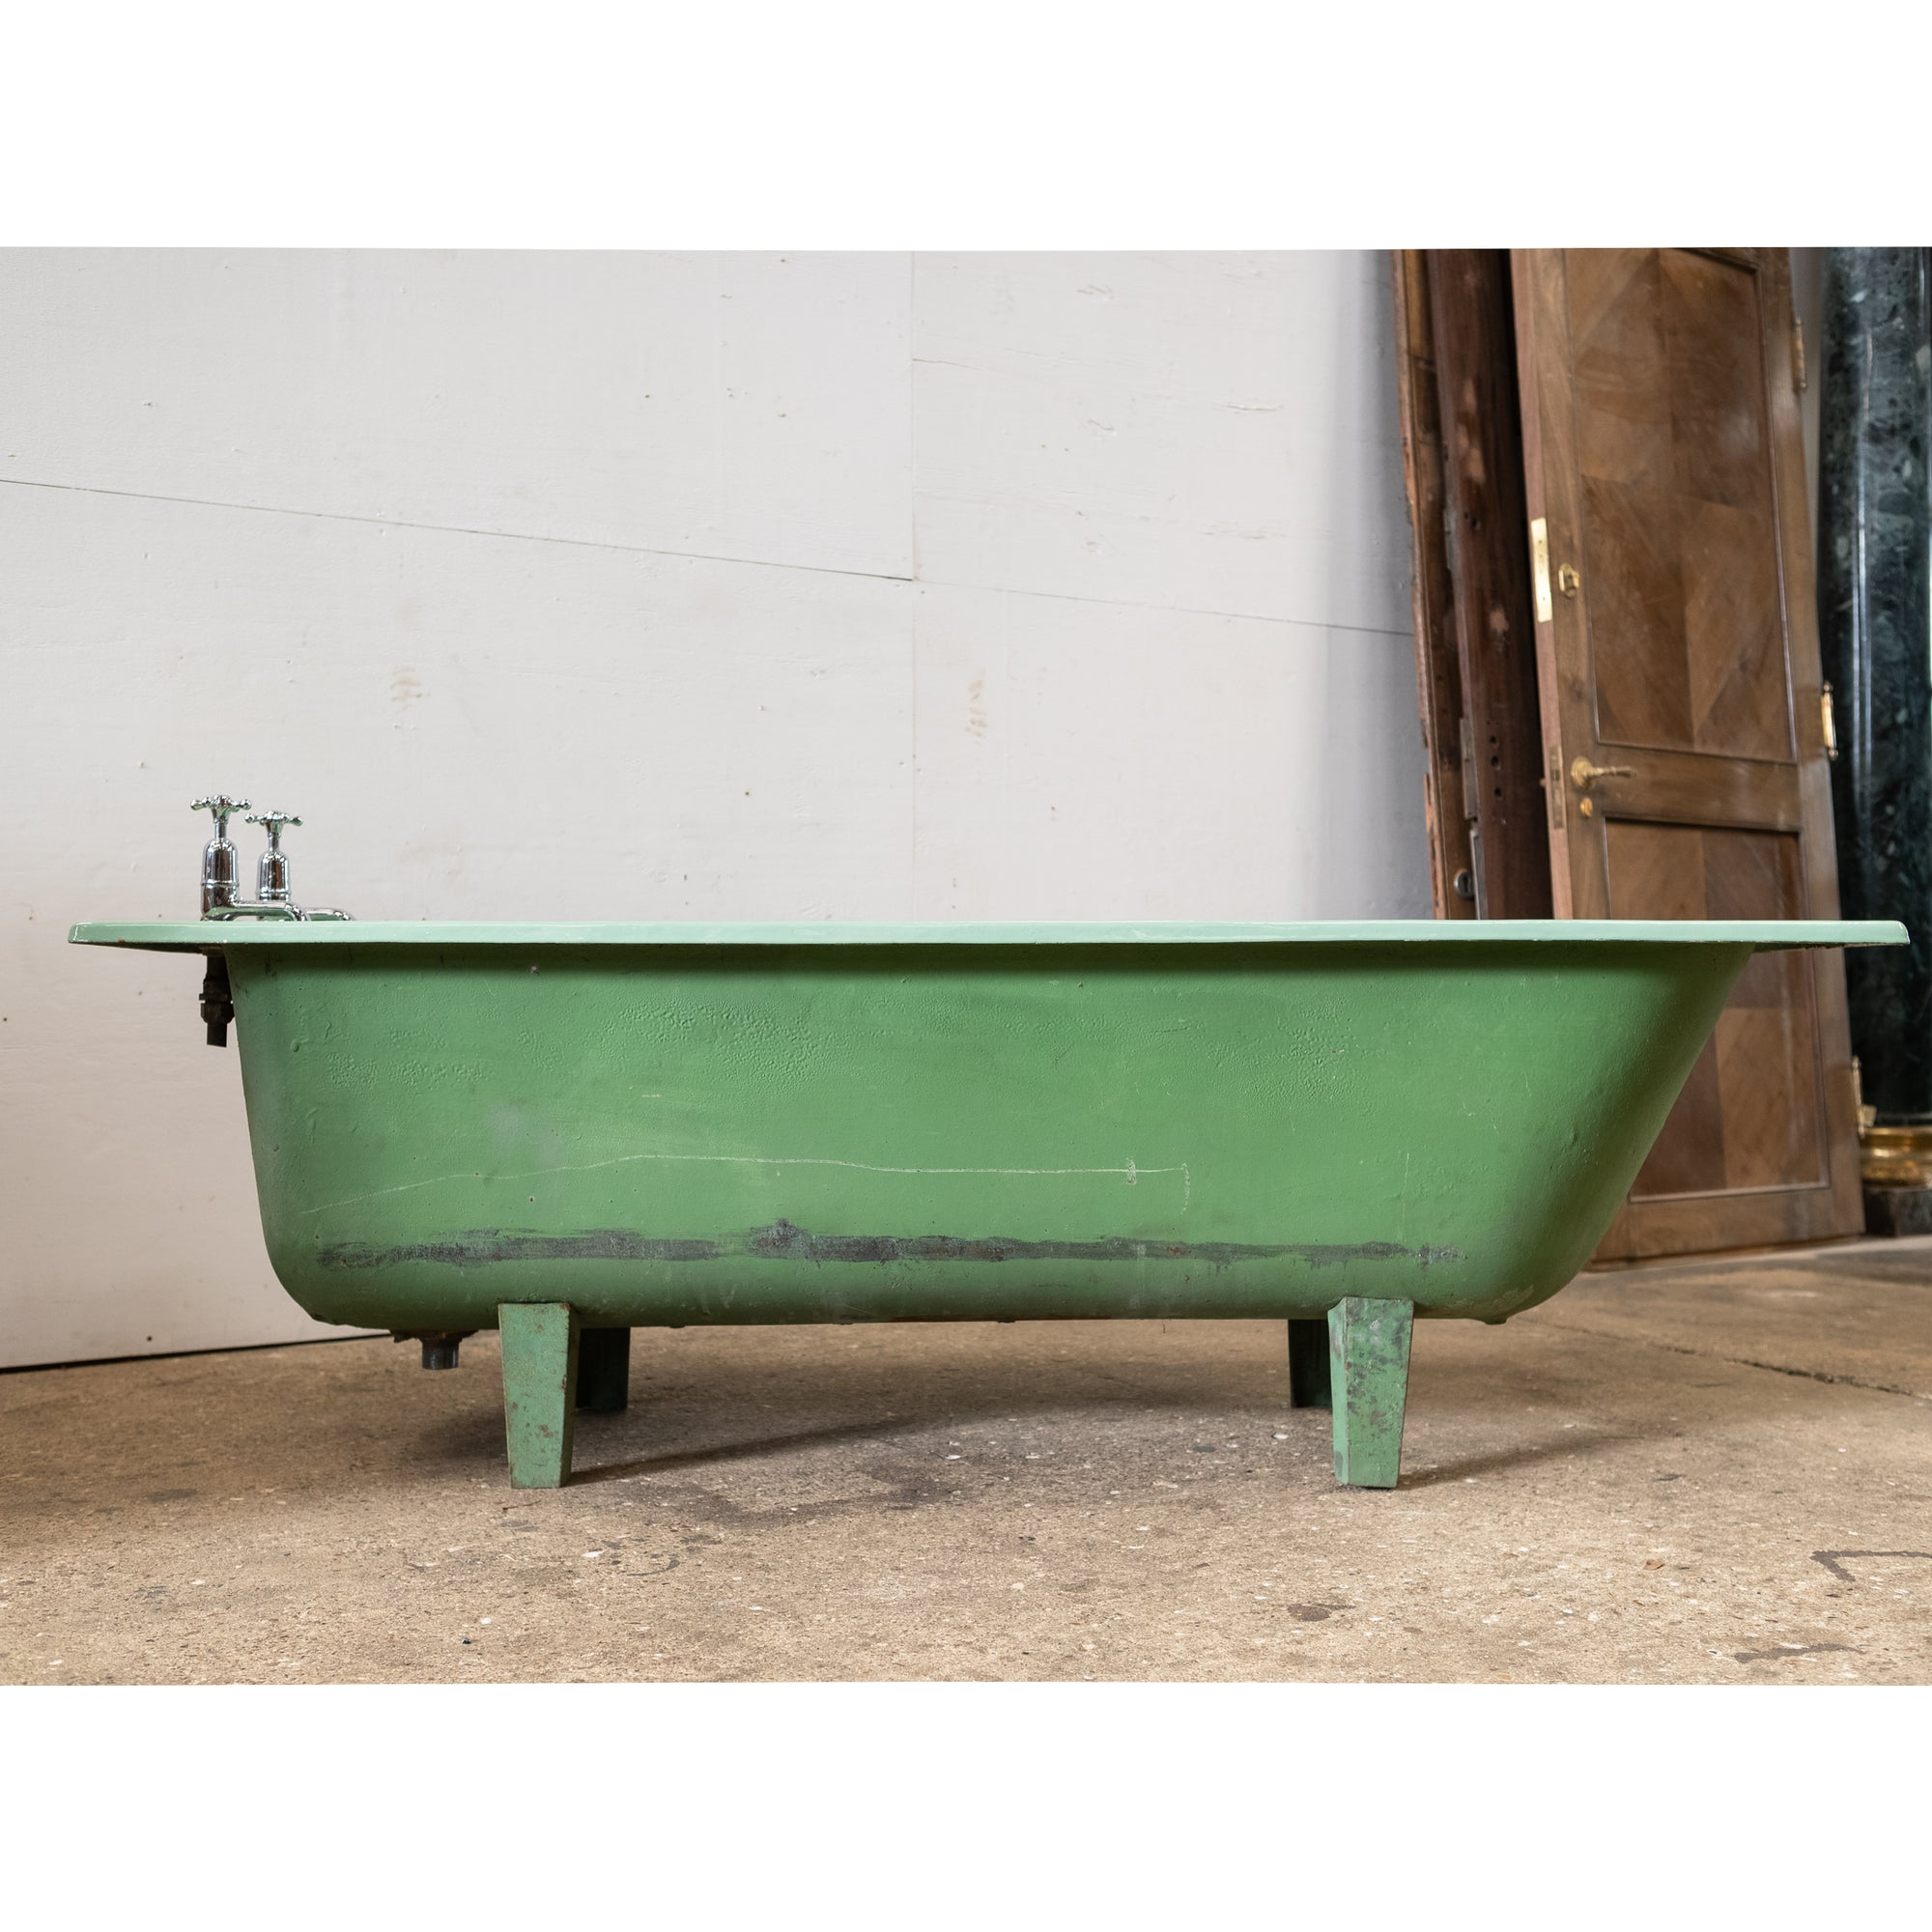 Reclaimed Avocado Green Cast Iron Bath Tub | The Architectural Forum